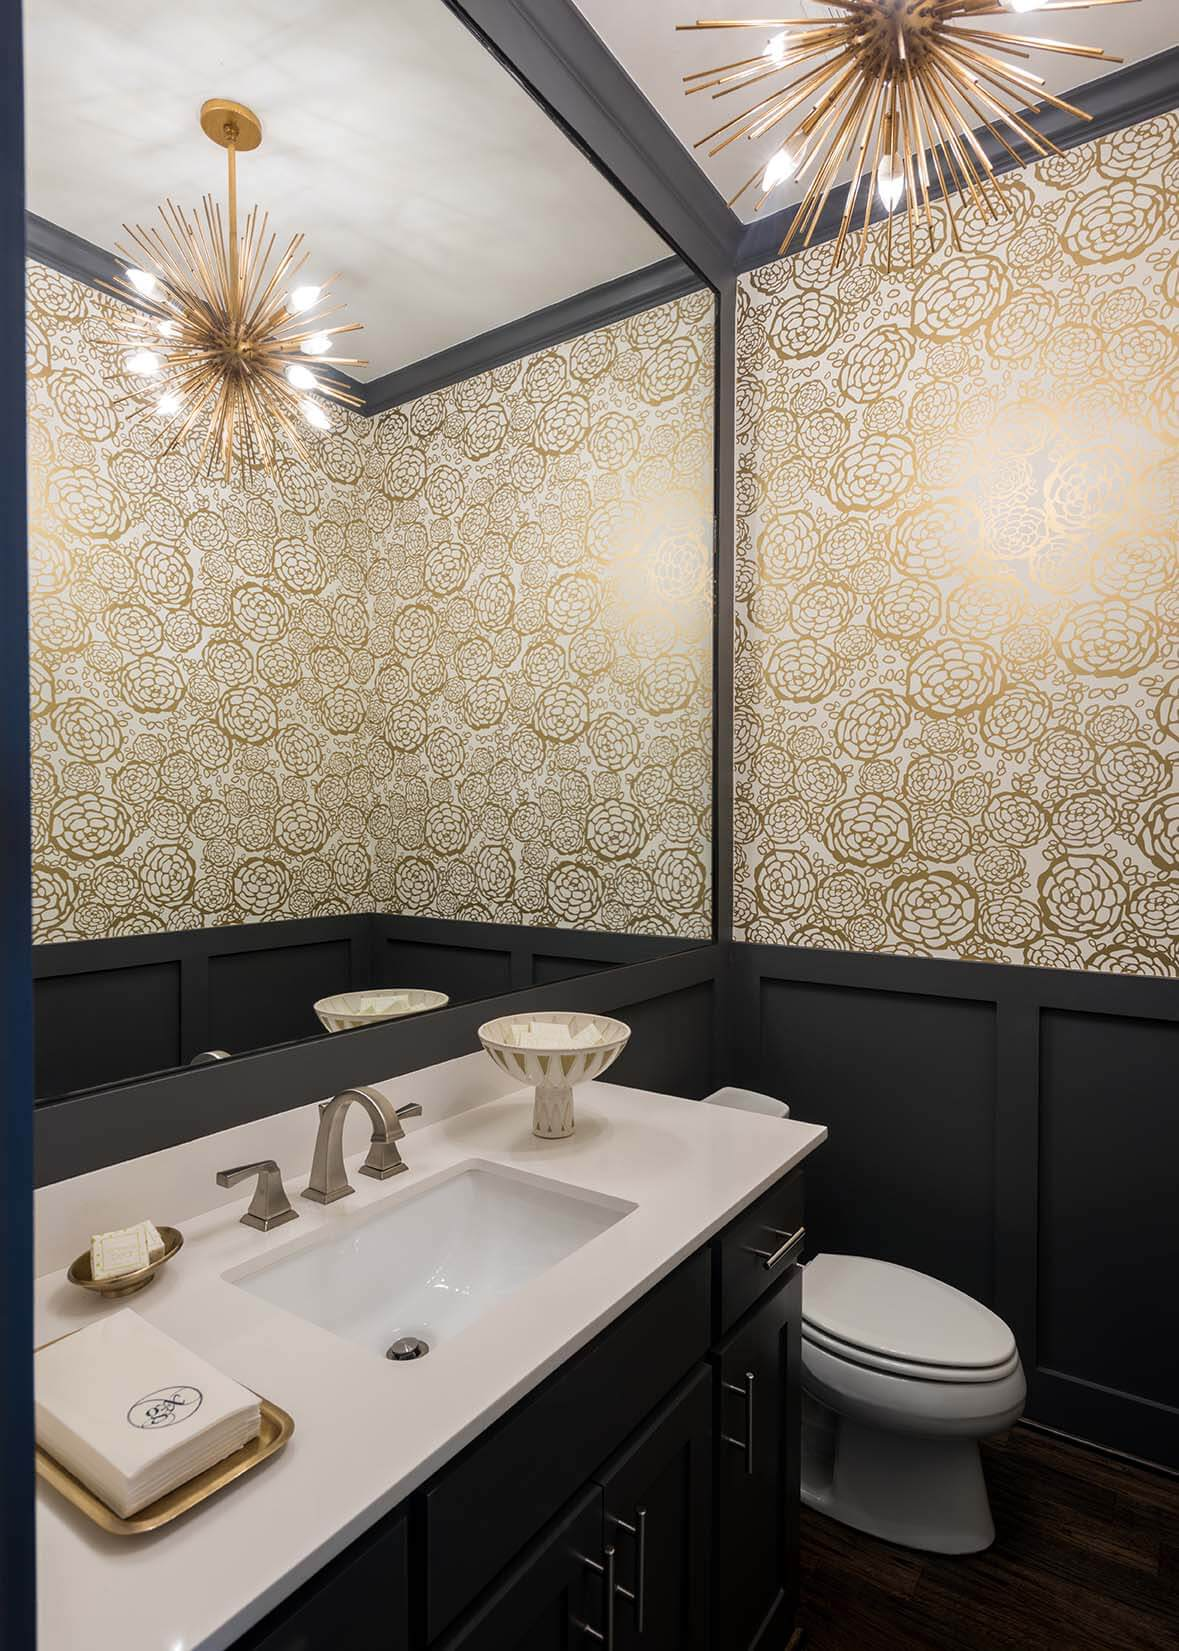 A Bold Powder Bathroom Wallpaper Increases The Glamour Factor In This Gorgeous Dallas New Build